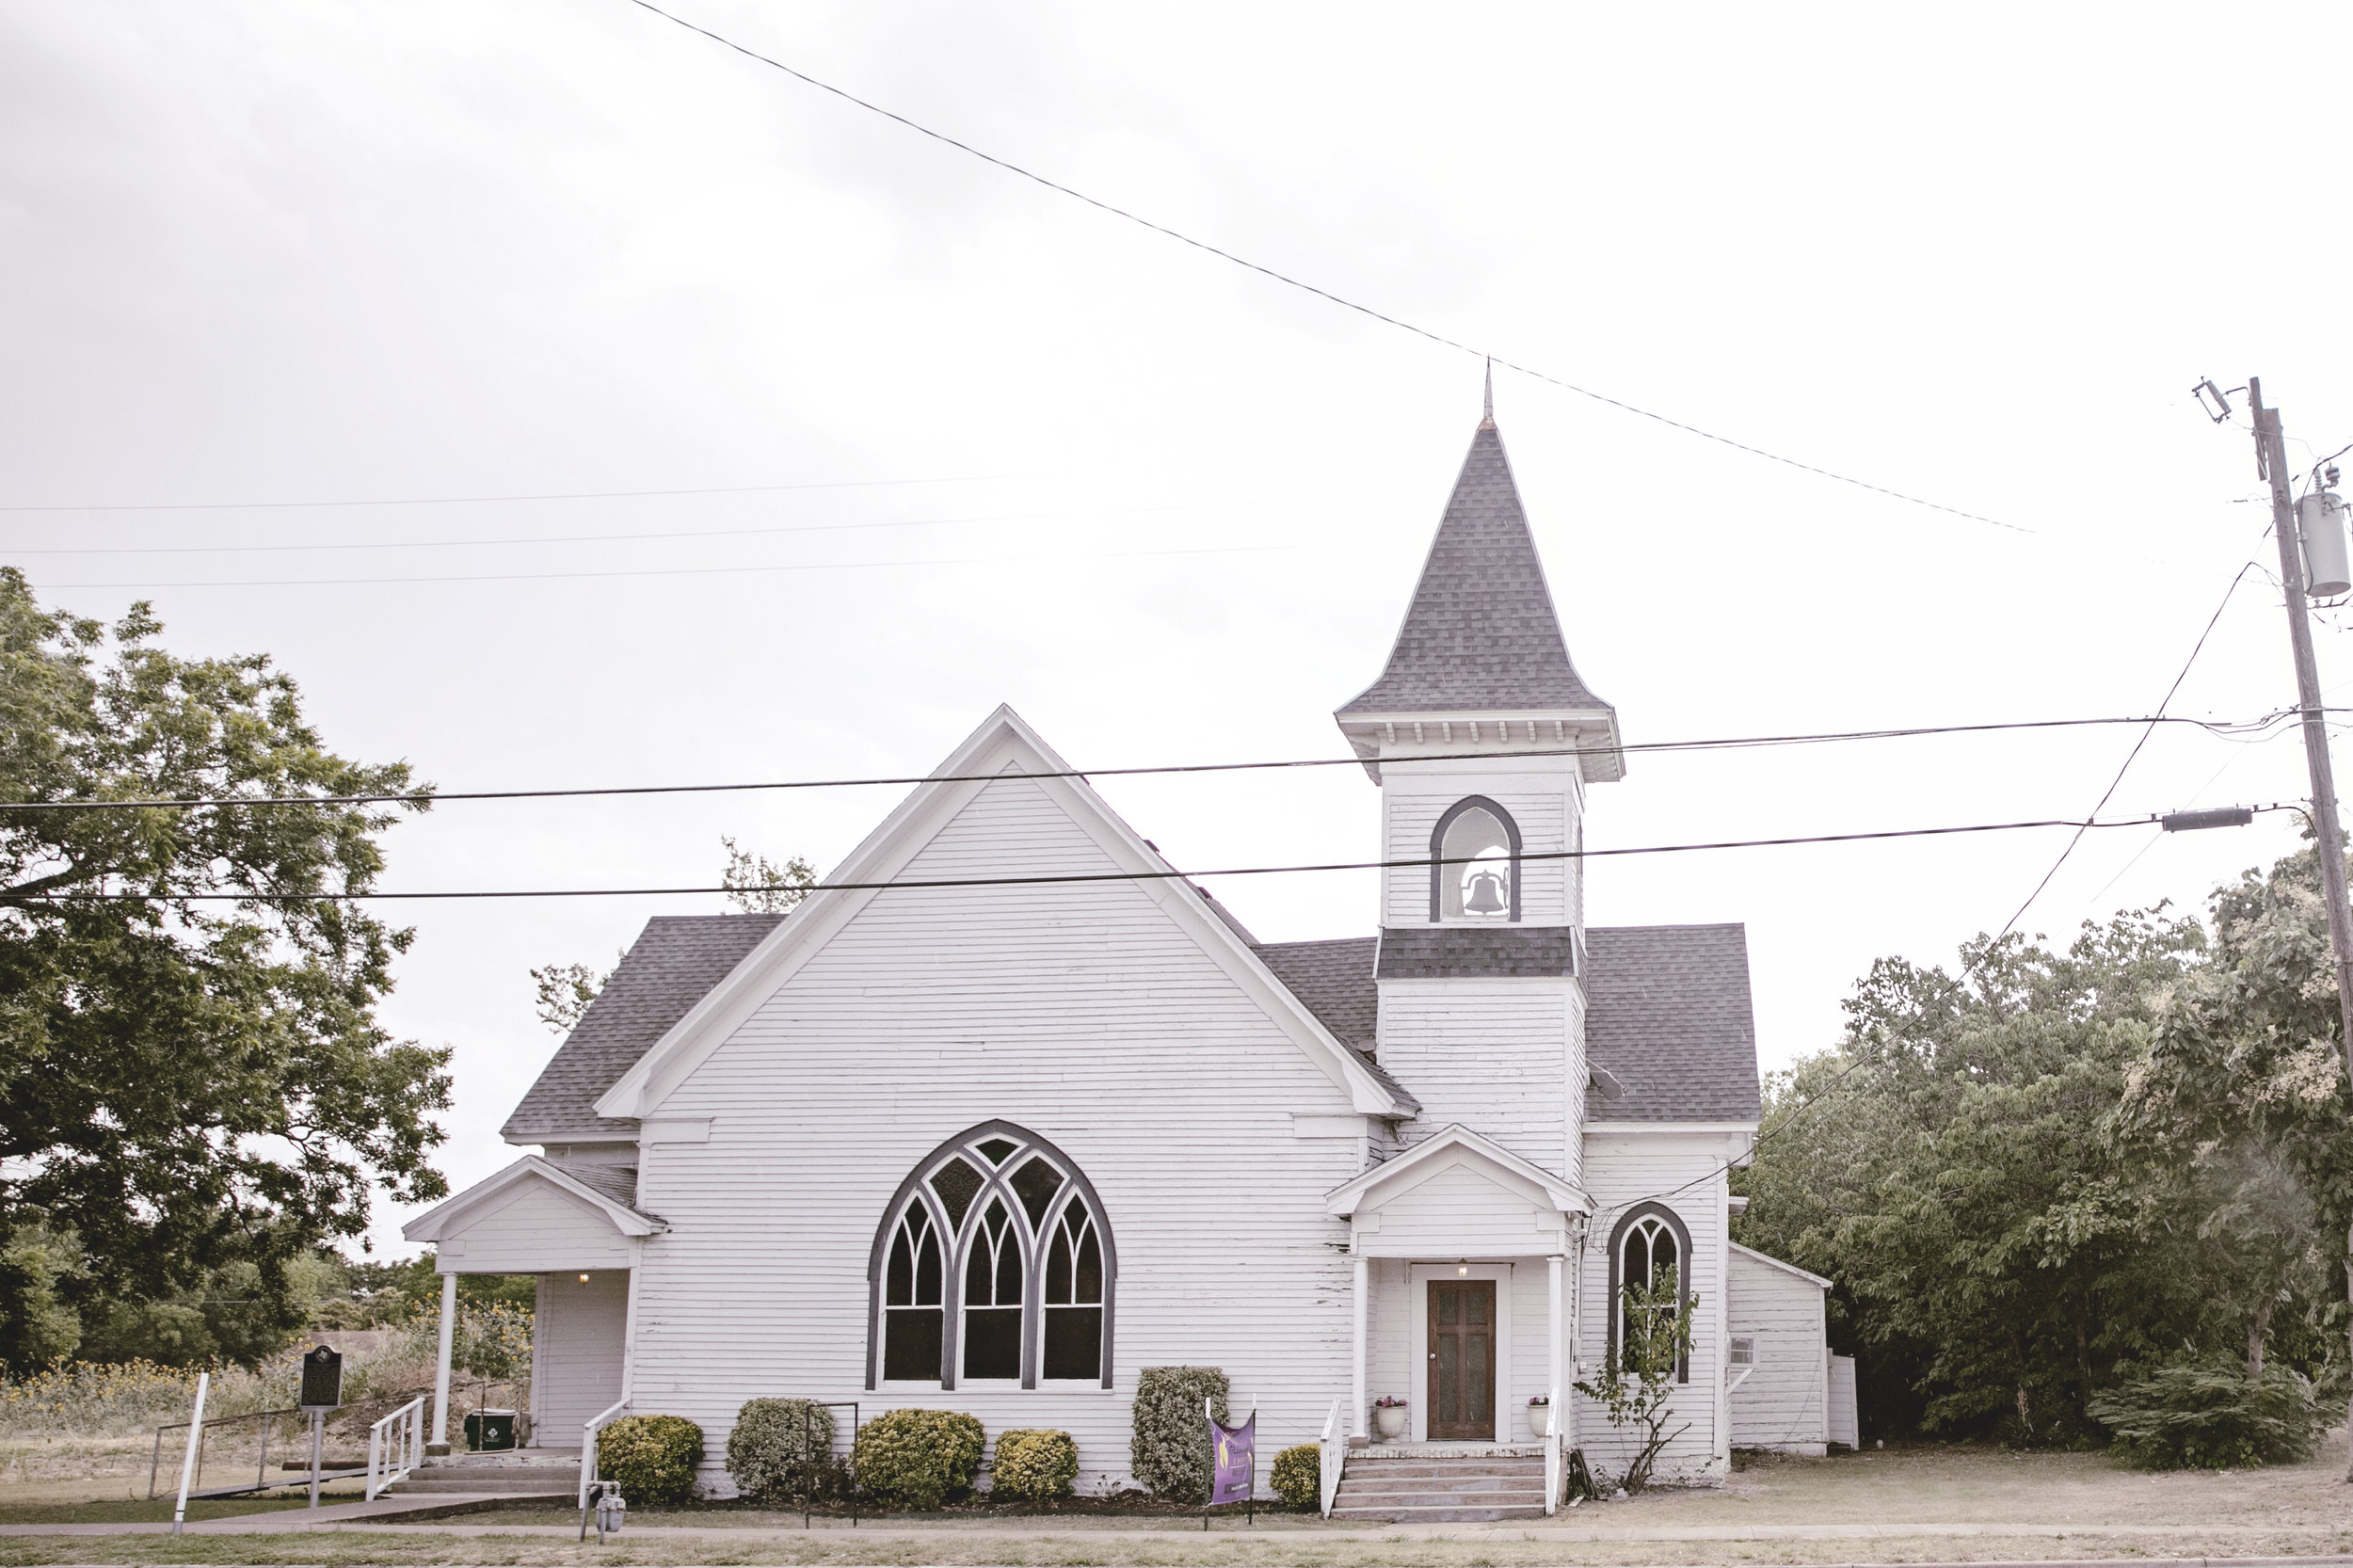 charming historic church / McGregor Texas / heirloomed travel